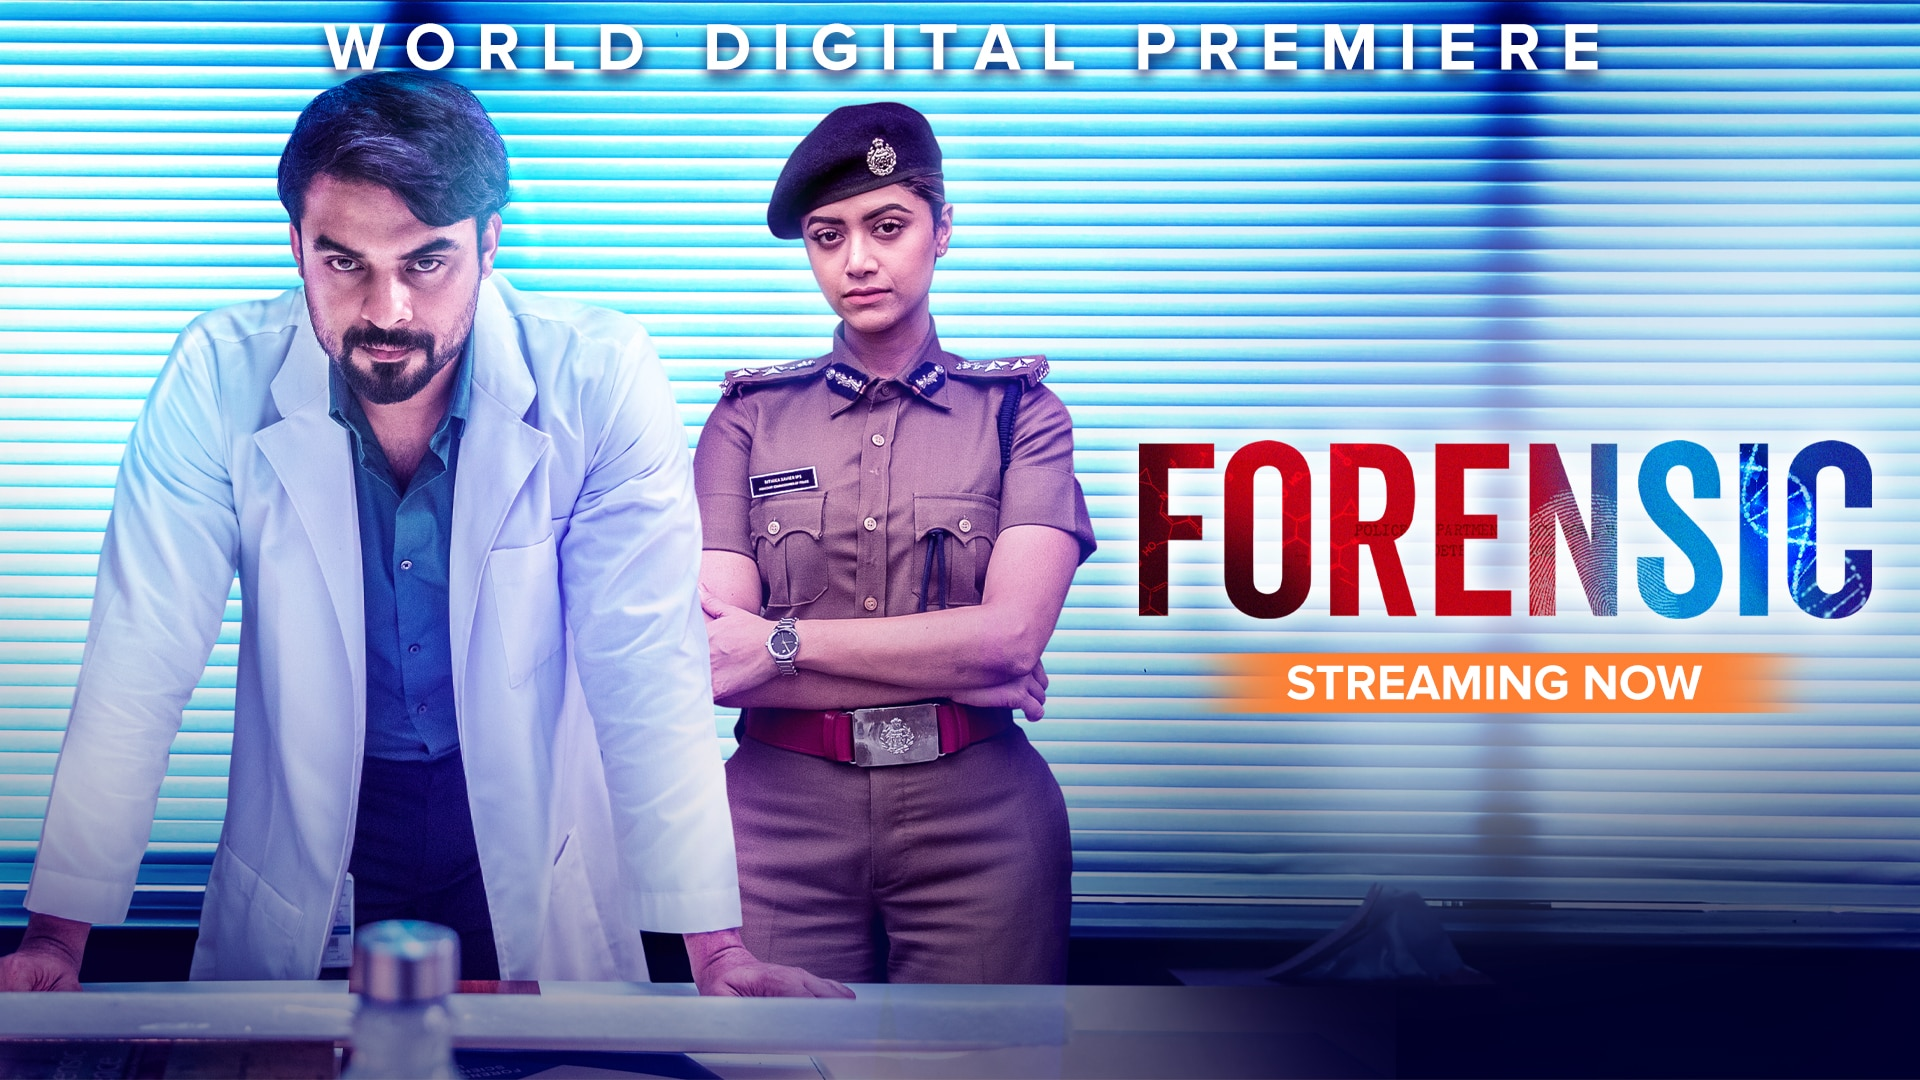 Watch Forensic Full Length Movie Online In Hd Quality 1080 P